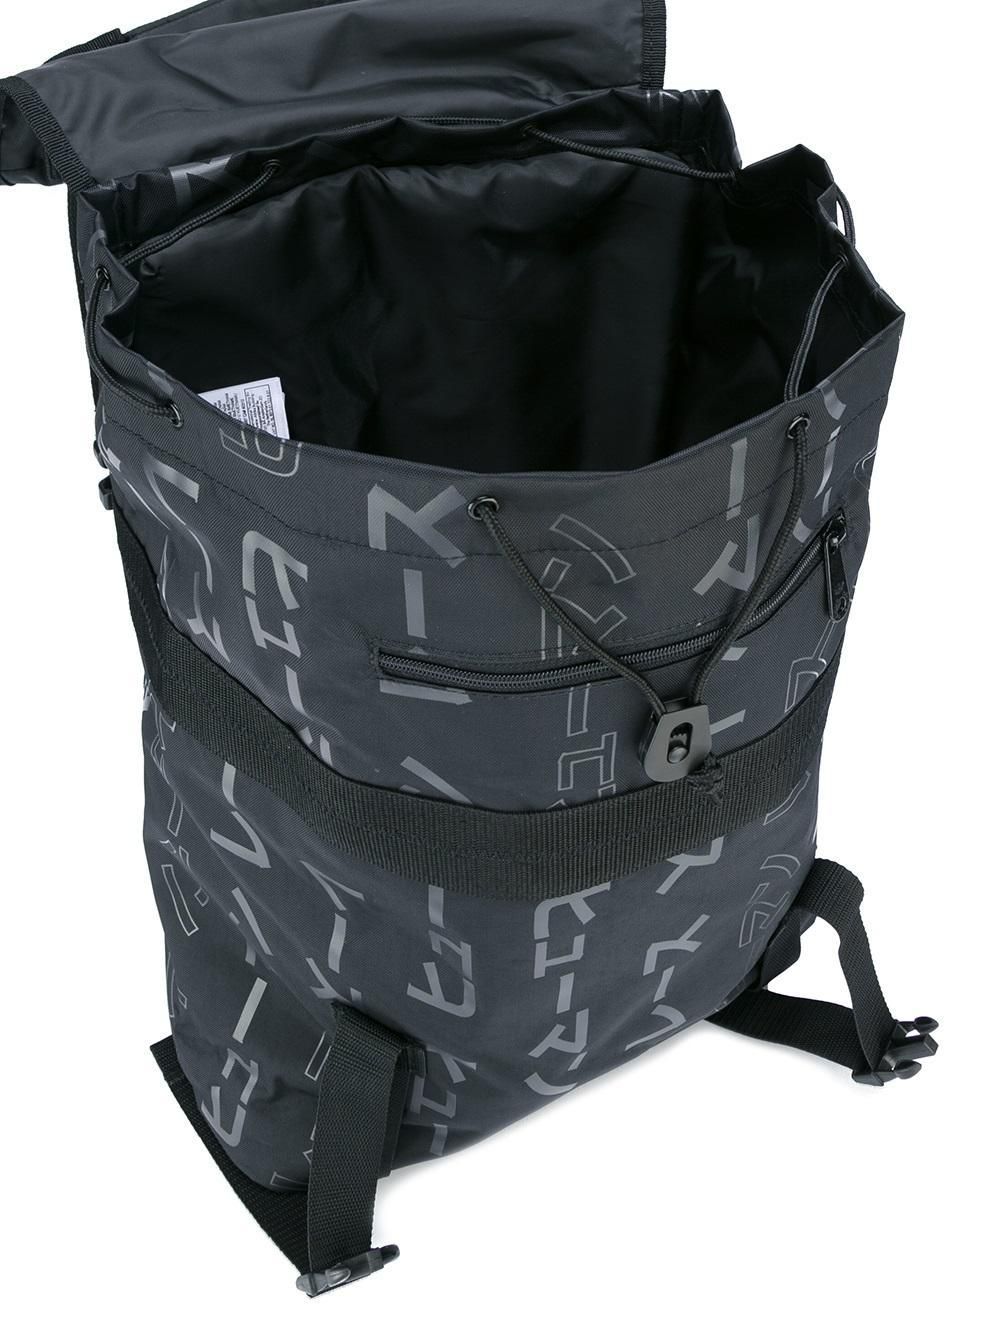 dbd44c4ec8 Lyst - adidas Originals  hu Race  Printed Backpack in Black for Men